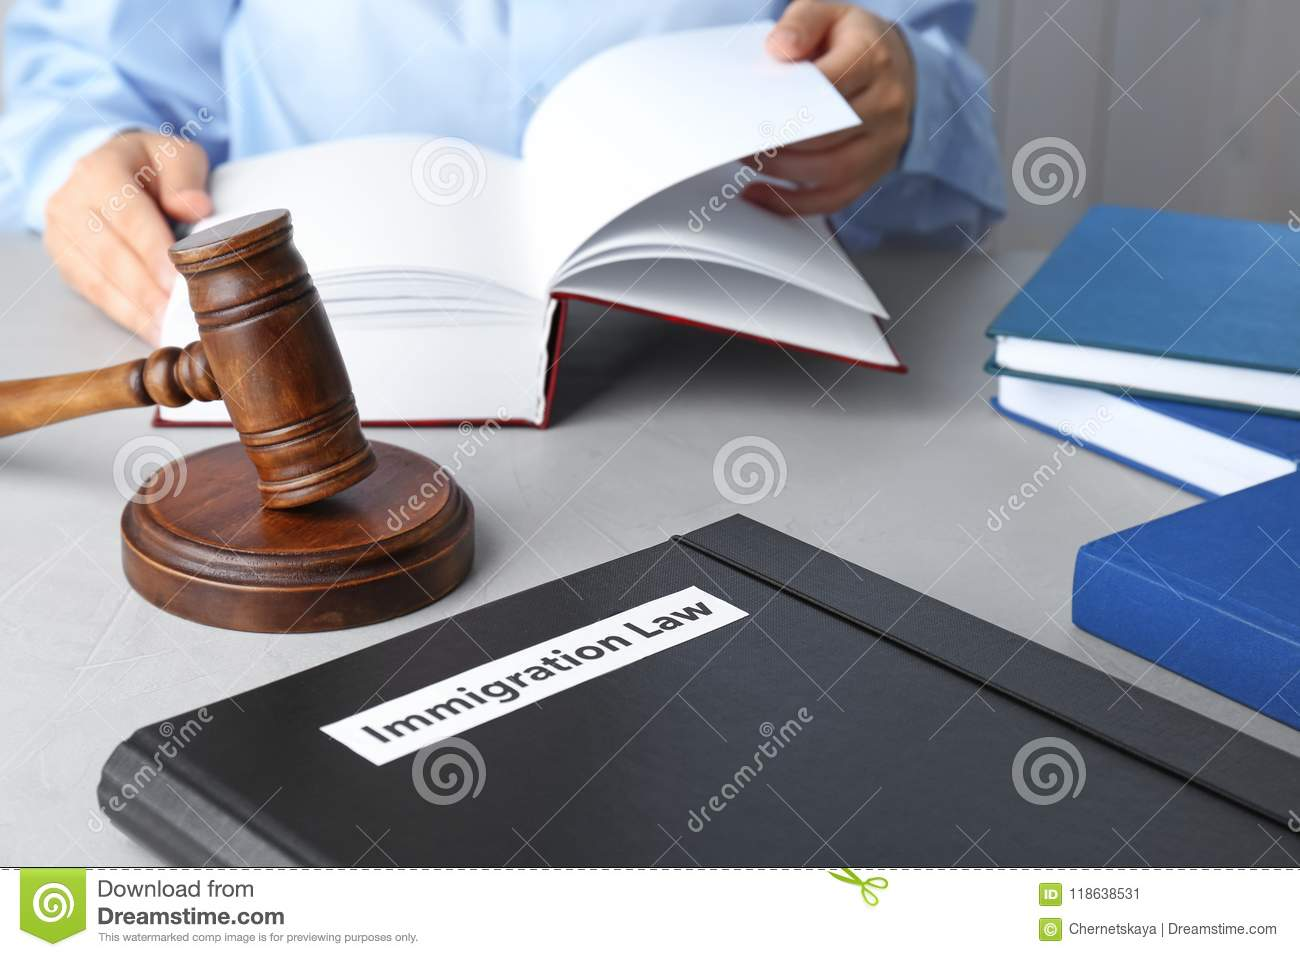 Folder with words IMMIGRATION LAW, gavel